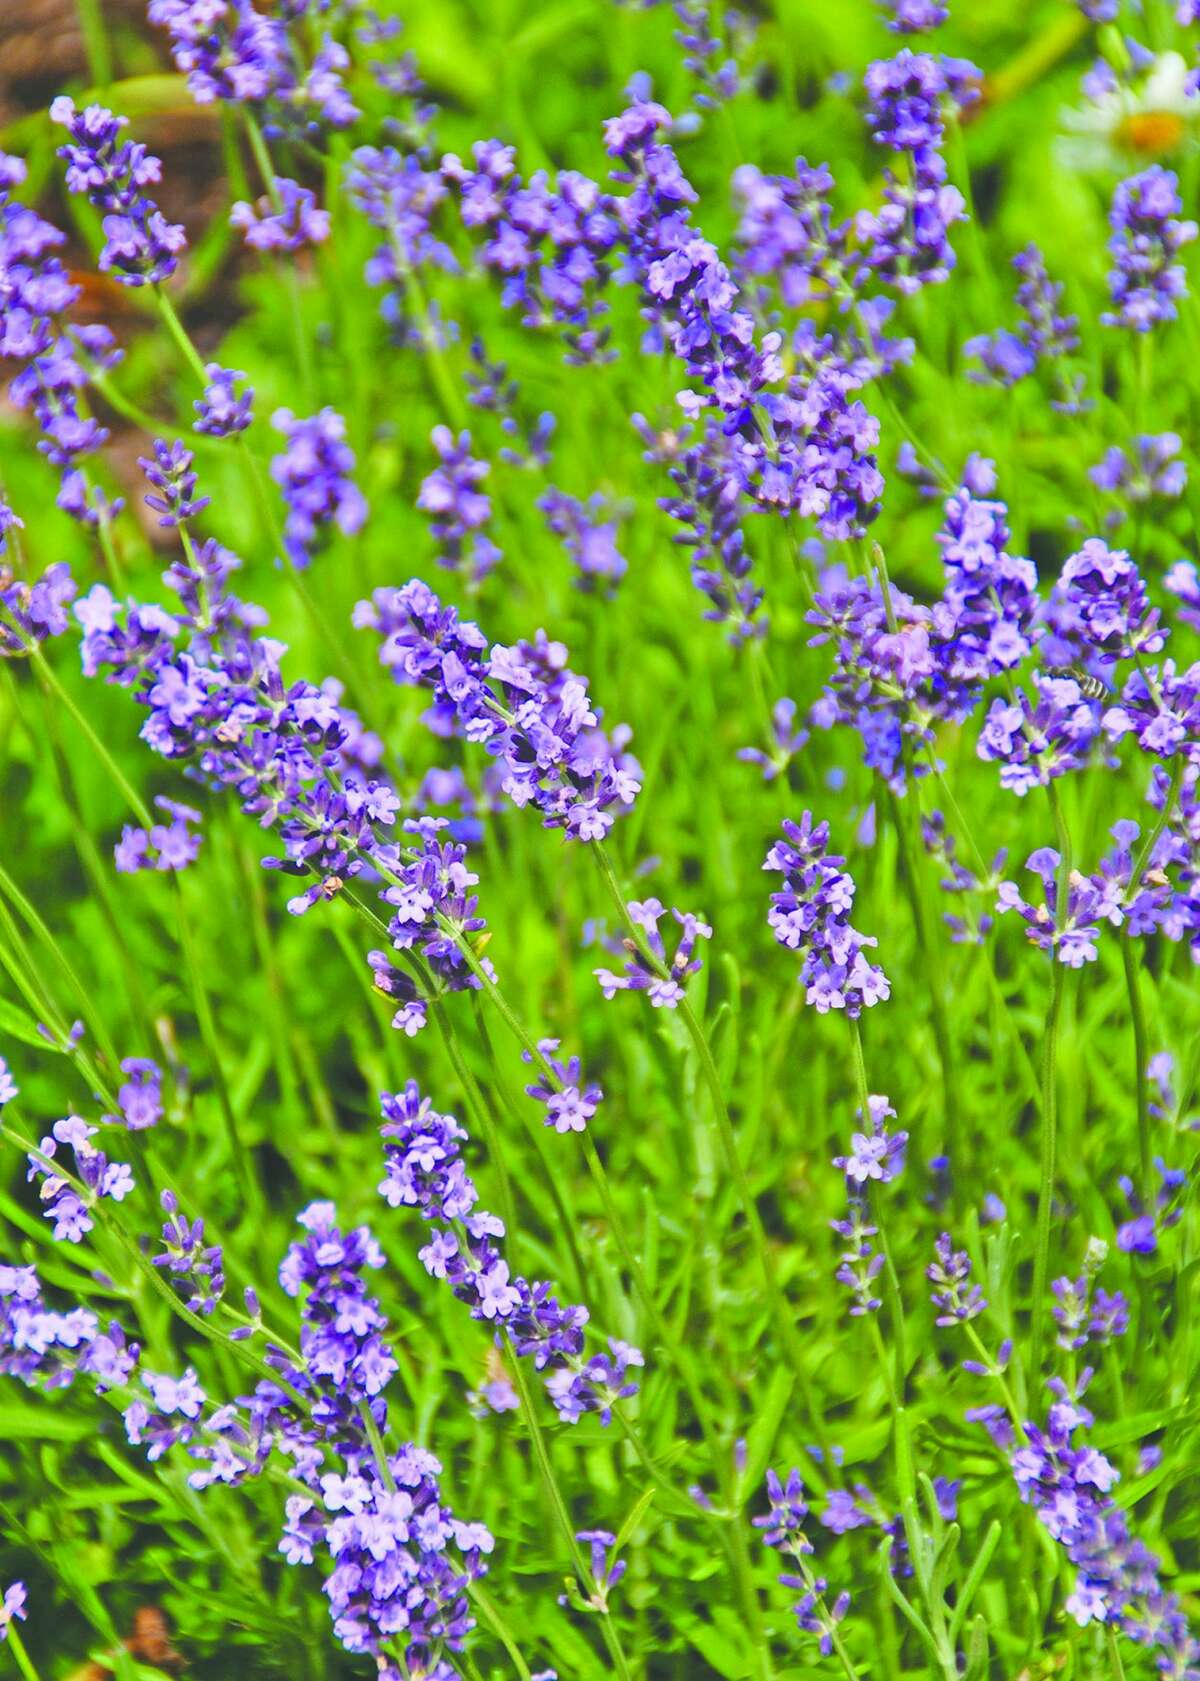 Lavender dries relatively quickly and retains the best color when dried in a low humidity, dark location.